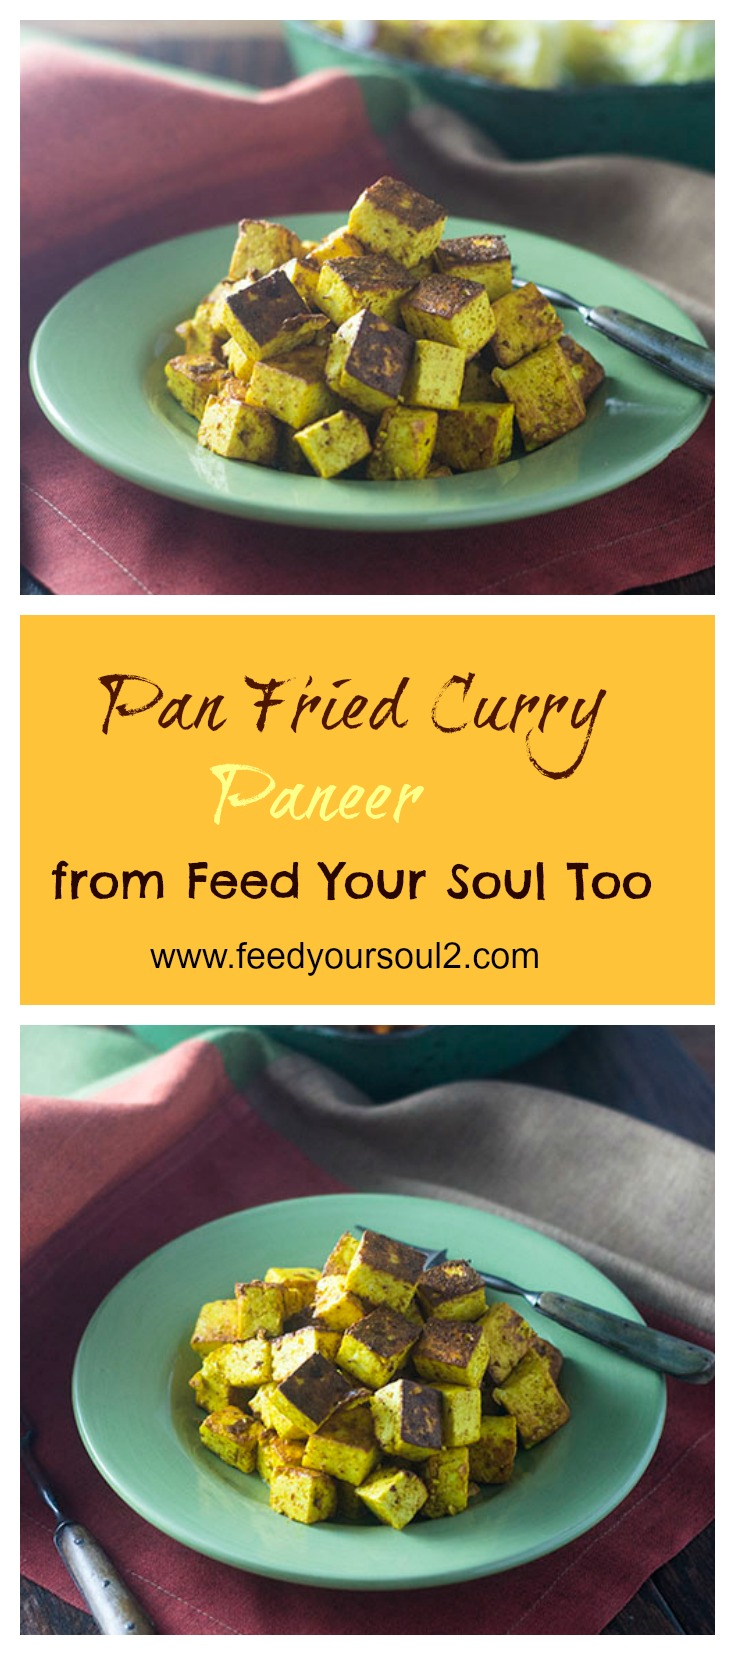 Pan Fried Curry Paneer #appetizer #indianfood #cheese #paneer | feedyoursoul2.com